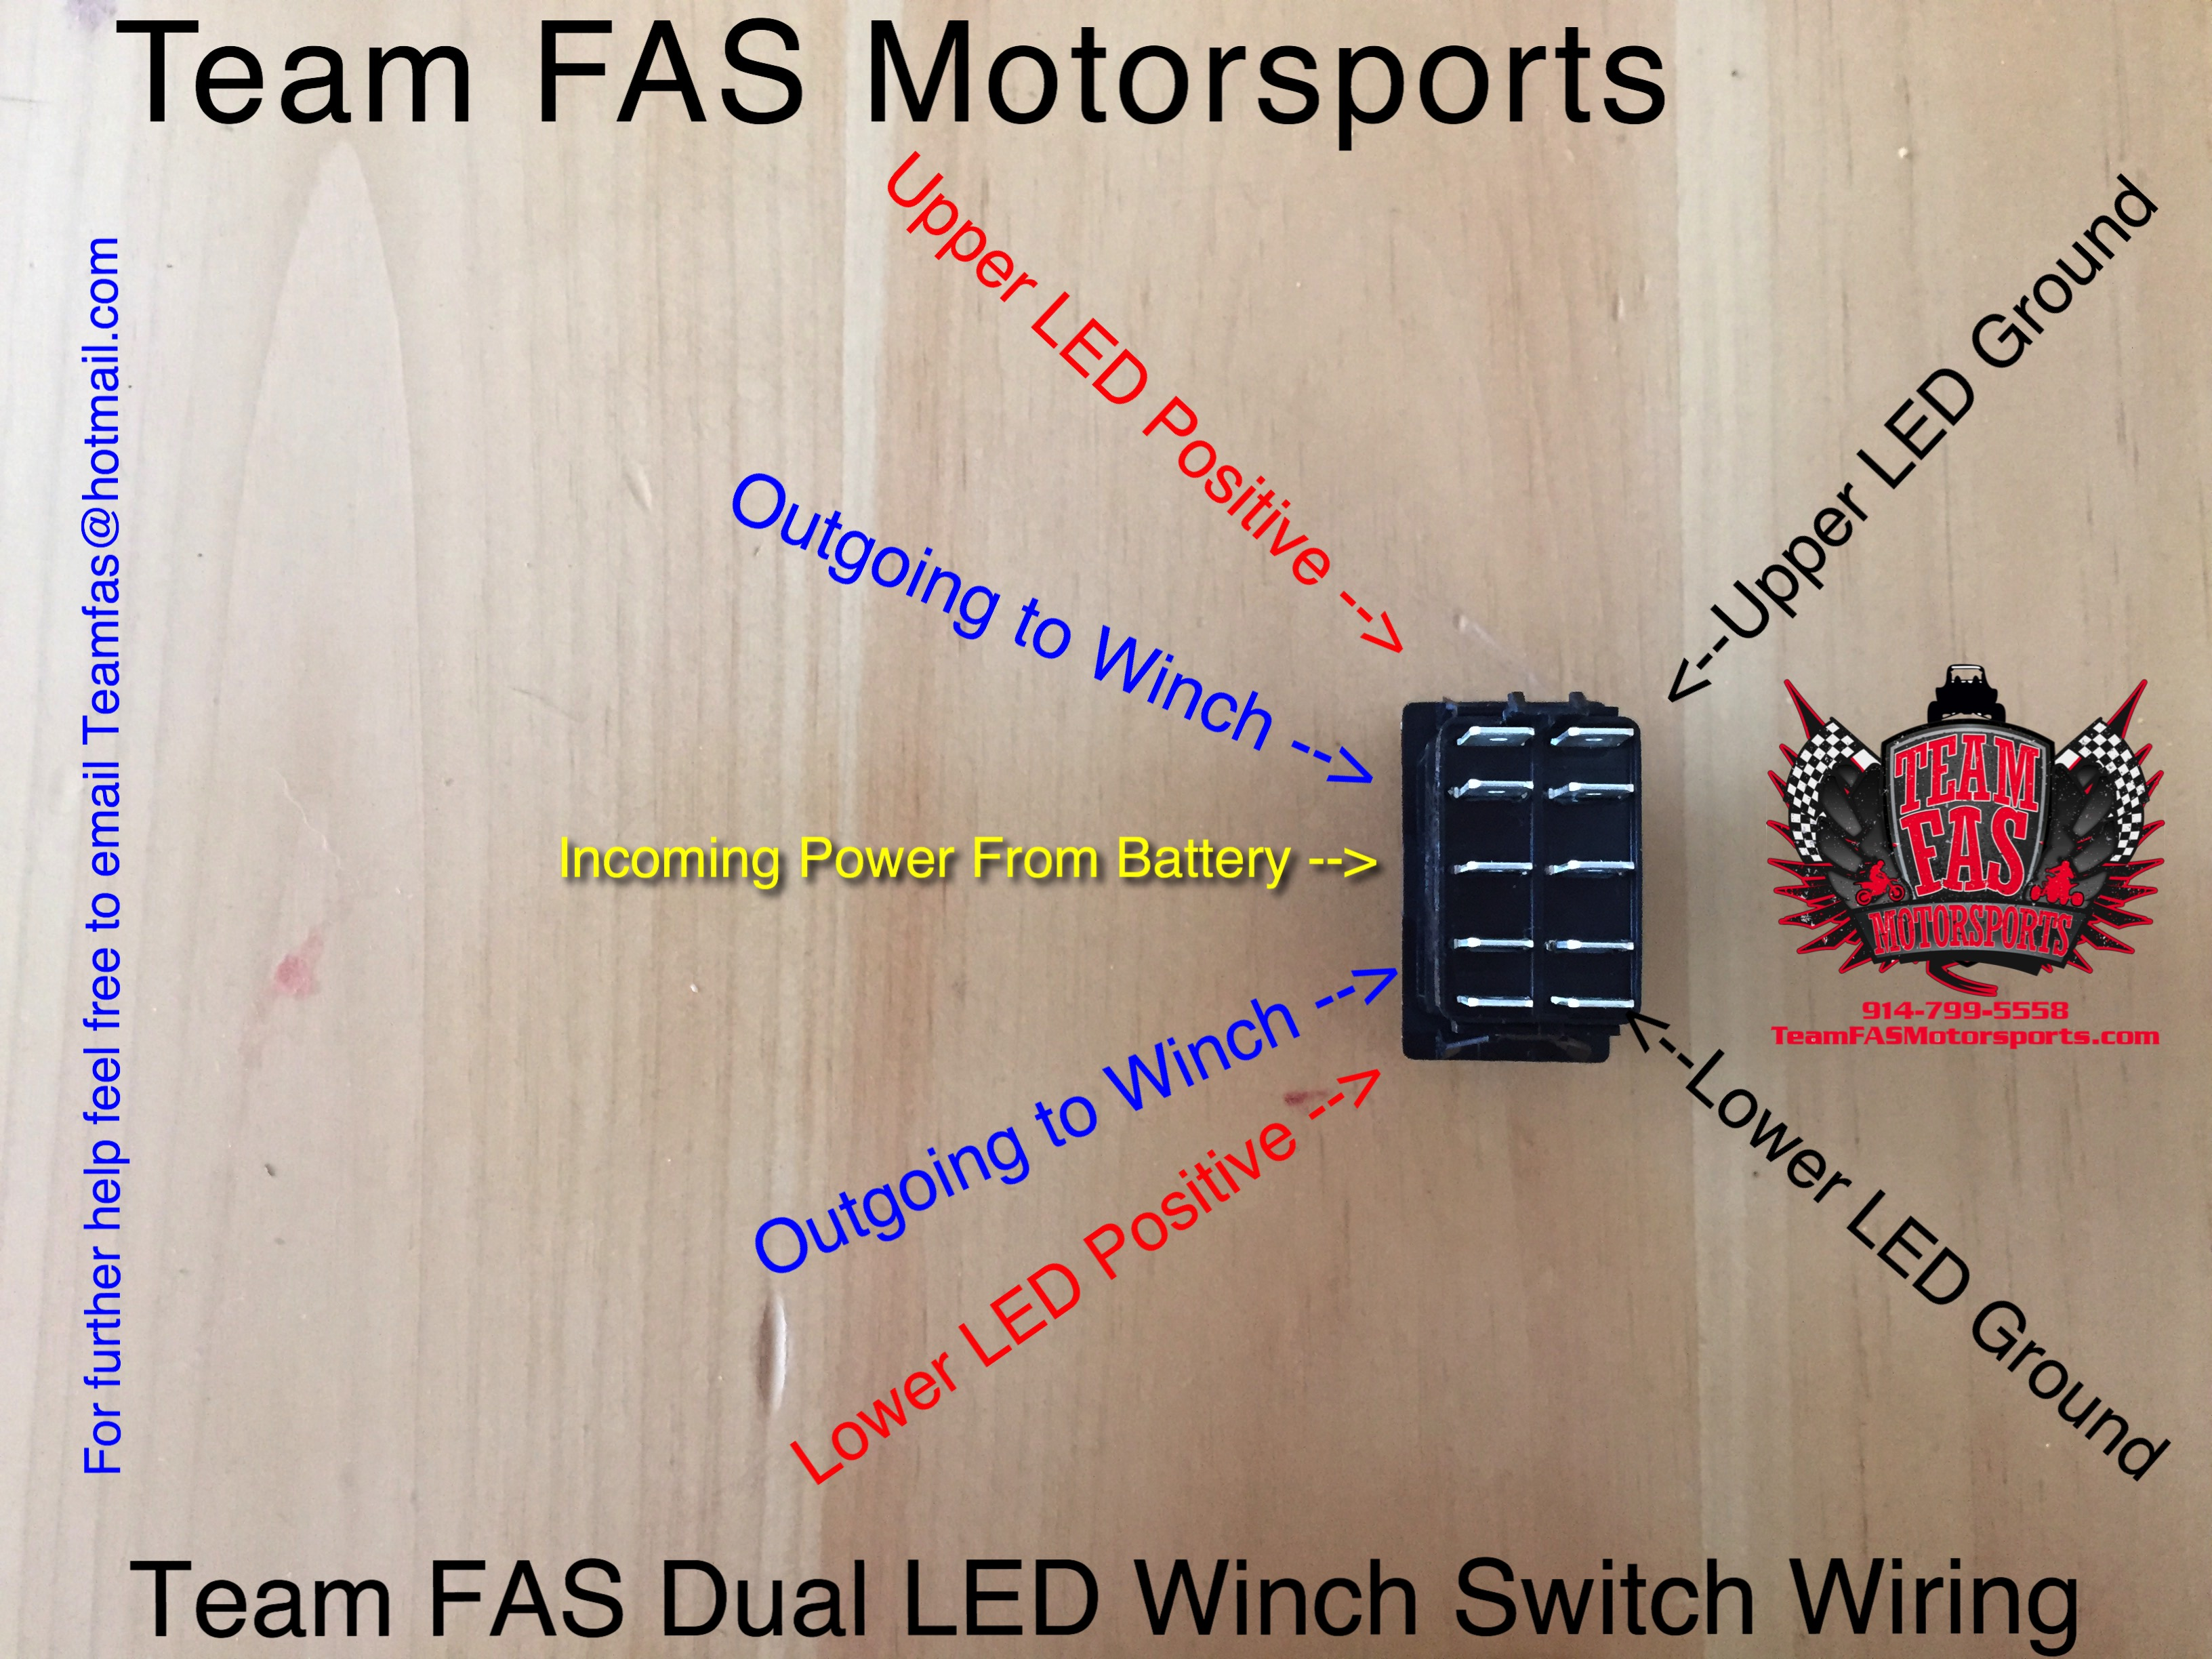 Wiring Diagram For Aftermarket Rzr Electrical Diagrams Polaris 2012 Team Fas Motorsports Dual Led On Off Switch